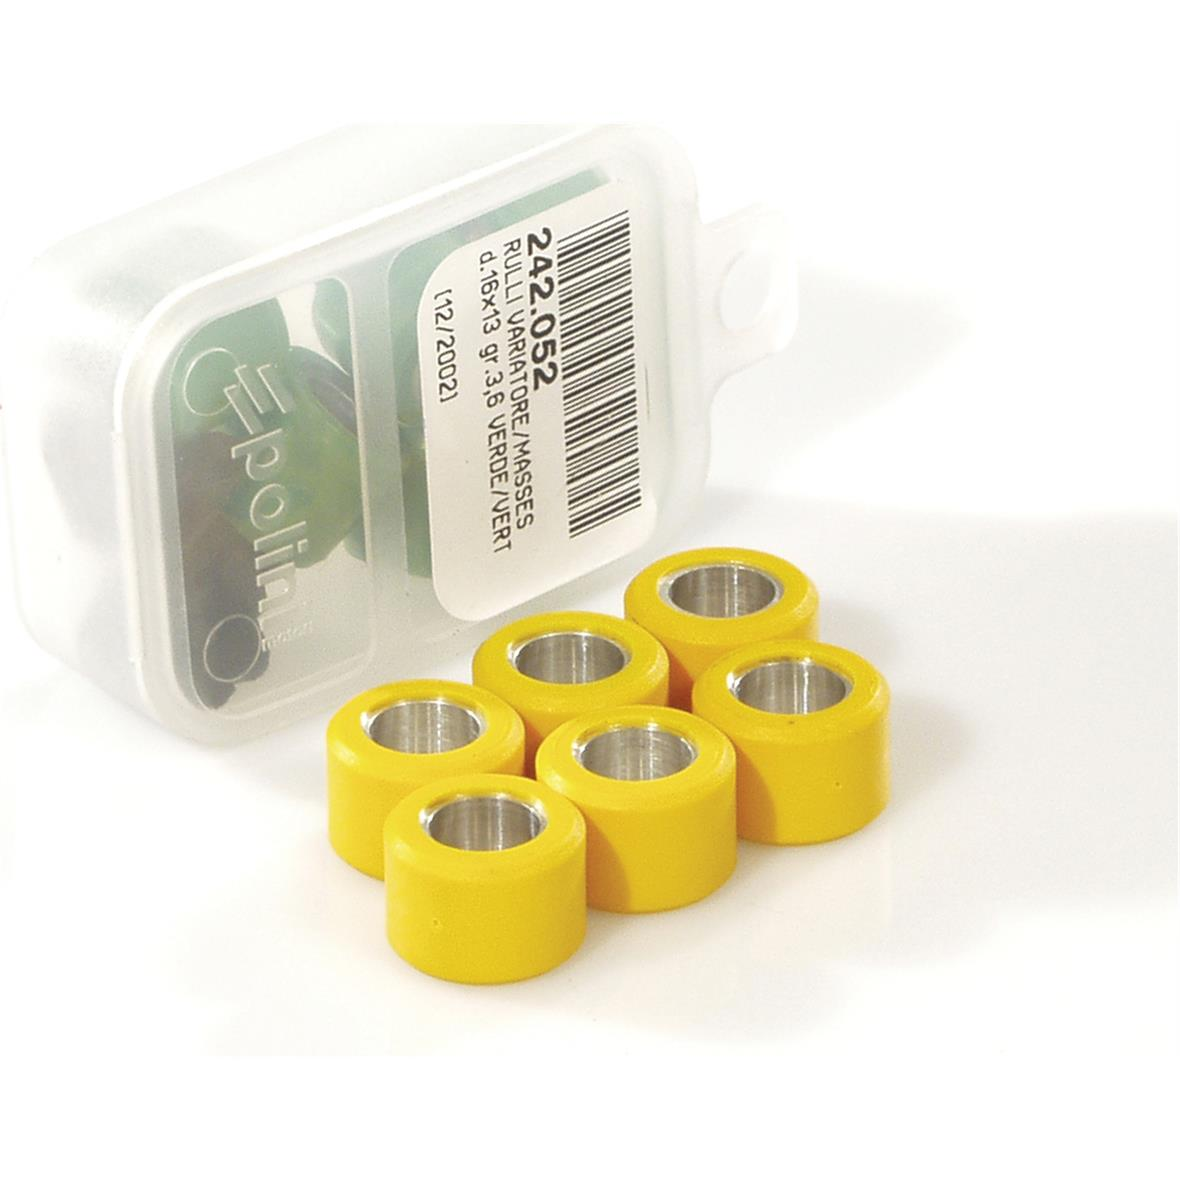 Product Image for 'Variator Rollers POLINI 17x12 mm 7,2gTitle'